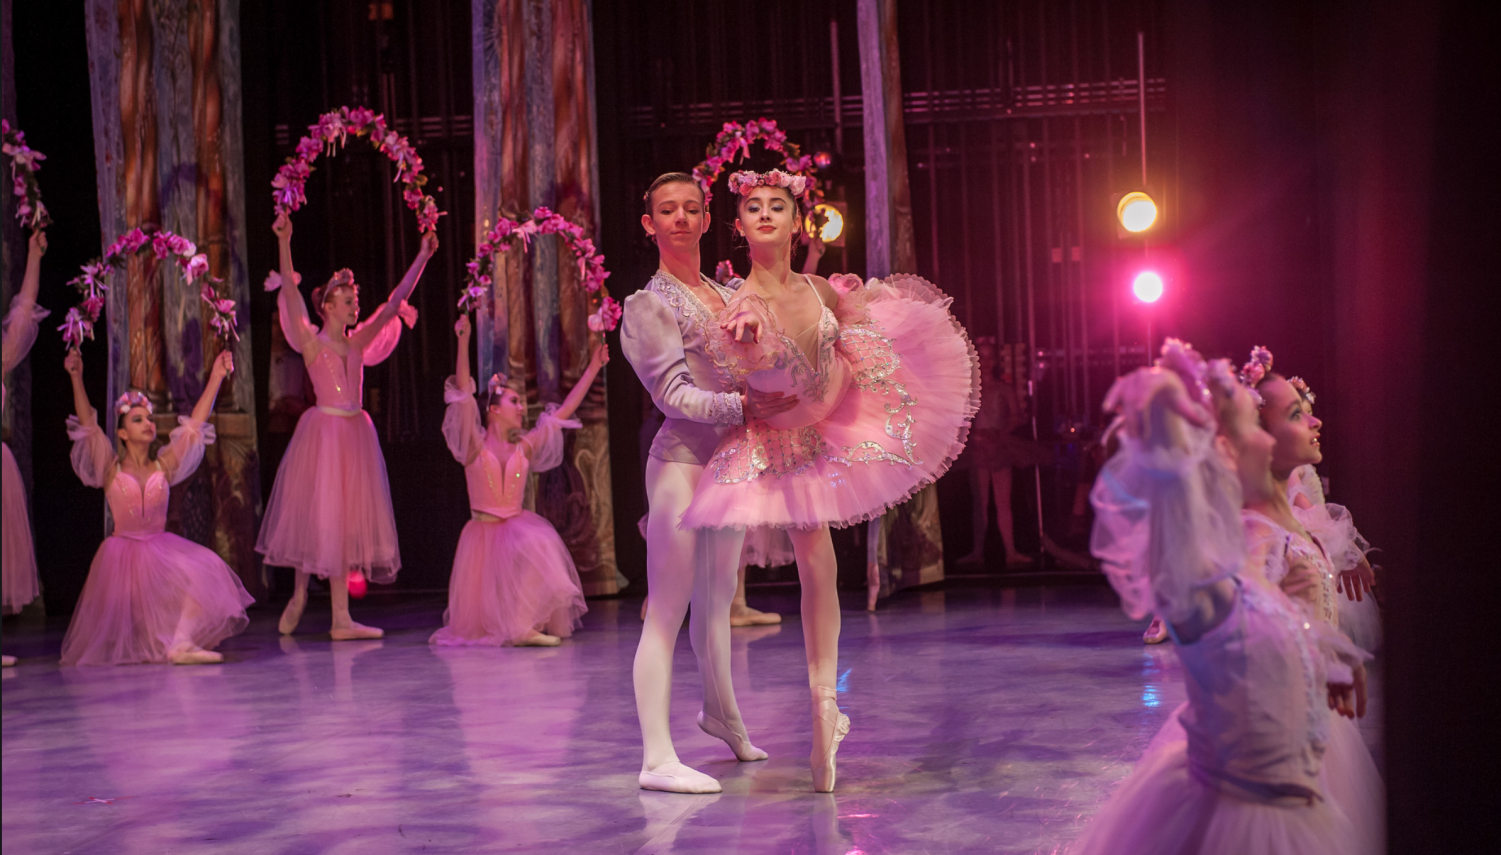 Dancers in the Nutcracker perform at the Pacific Northwest Ballet. Several students at Seattle Prep participate as dancers in several different Nutcracker performances throughout the holiday season.